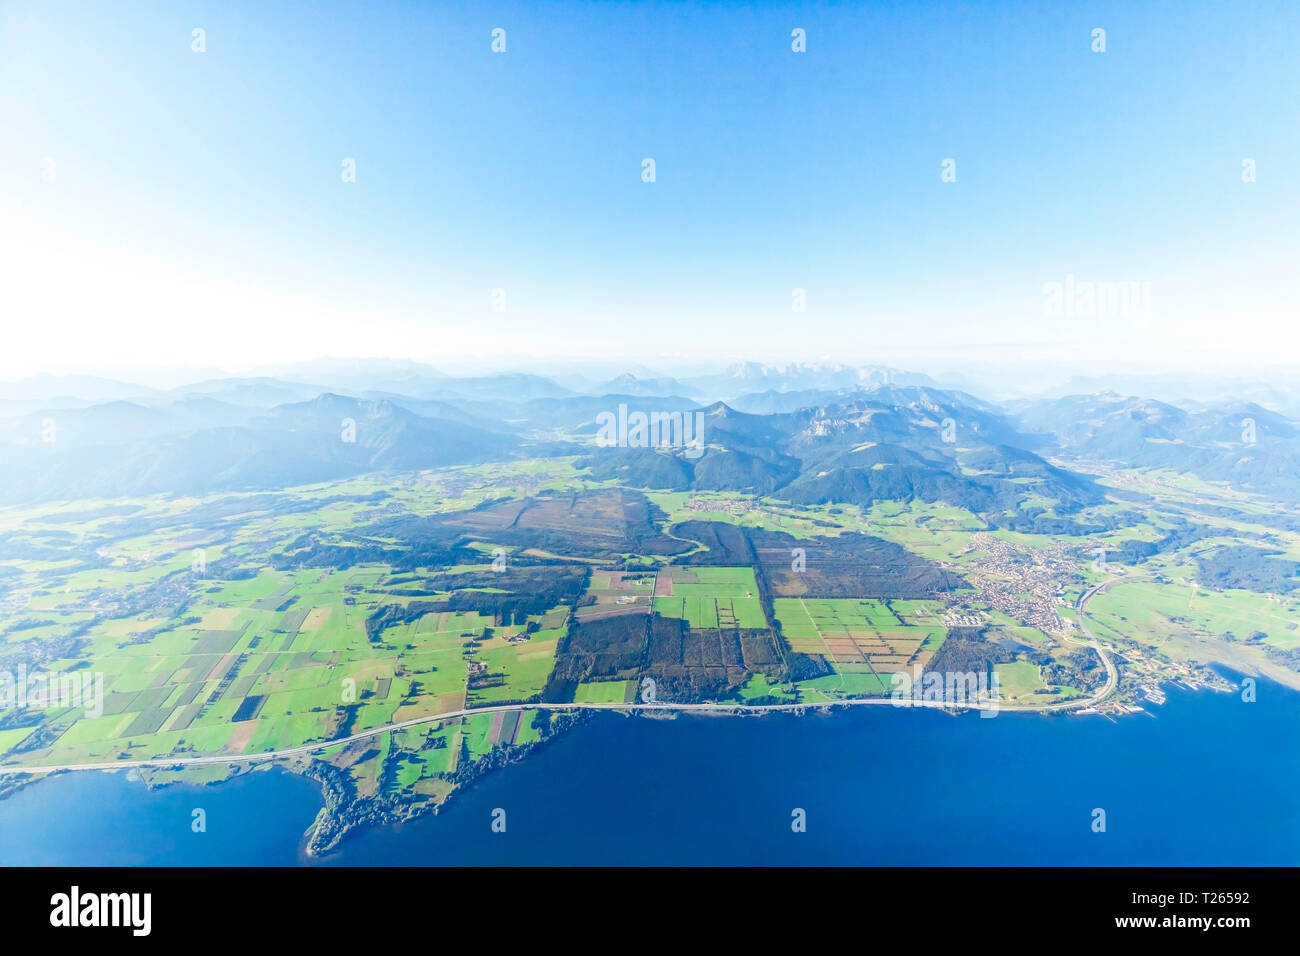 Germany, Bavaria, Chiemgau, Aerial view of Lake Chiemsee, Alps, A9 motorway and Bernau, Kampenwand and Alps in the background Stock Photo